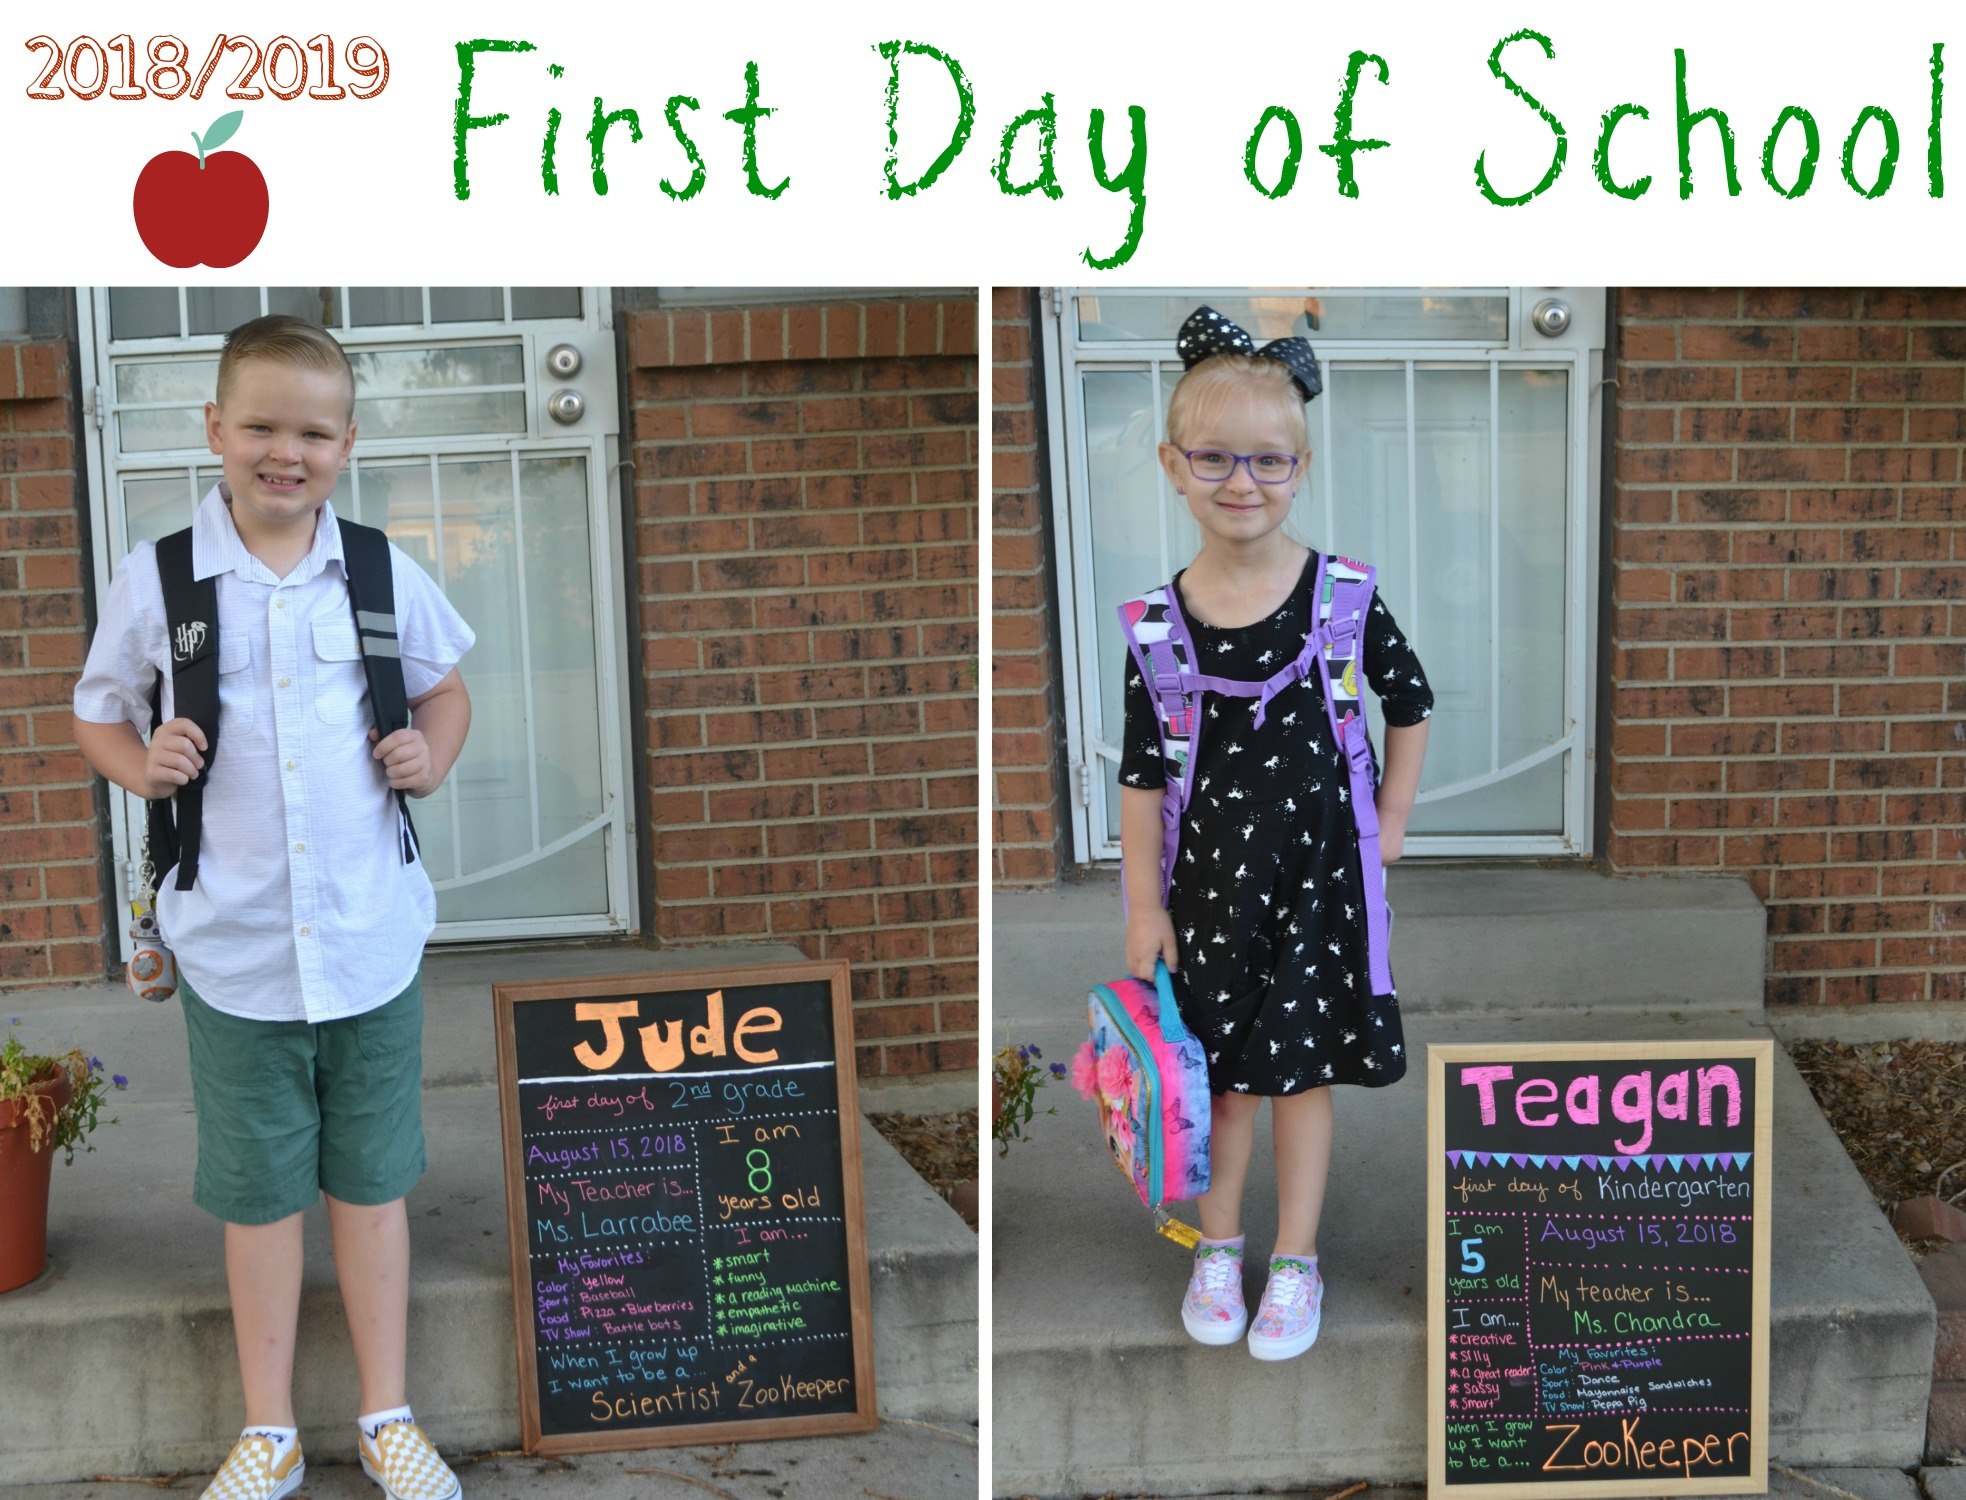 First day of school picture ideas, first day of school chalkboard, 1st day of school pictures, ideas for first day of school pictures, chalkboard for first day of school, 1st day of school chalkboard